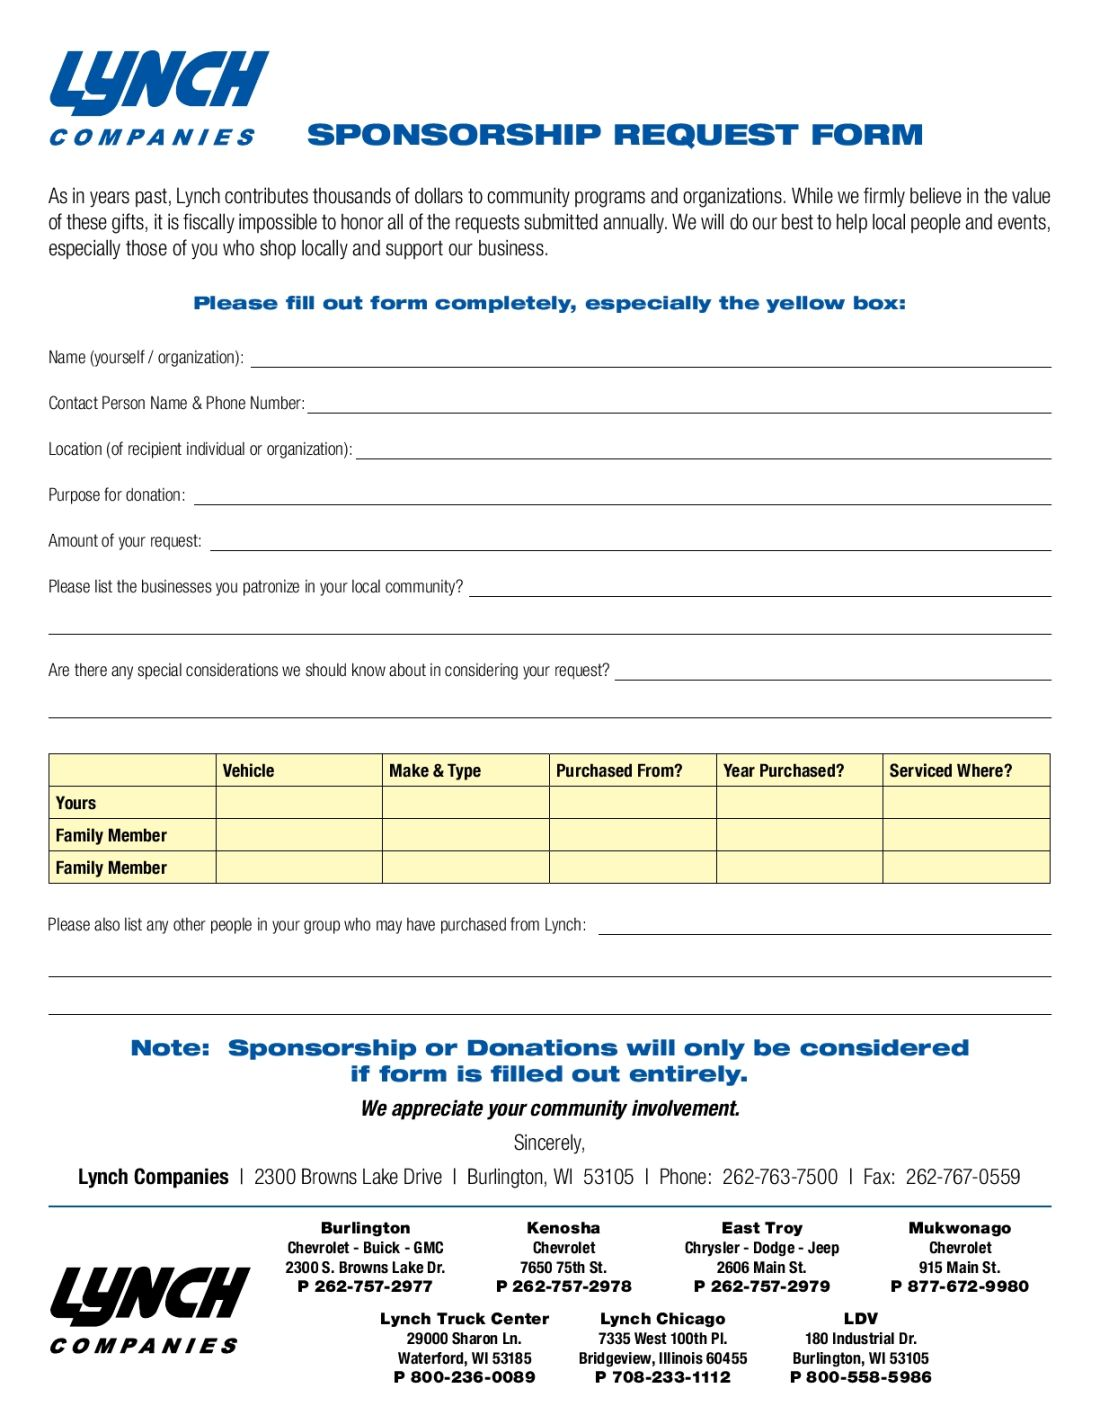 Lynch Companies – Sponsorship Request Form